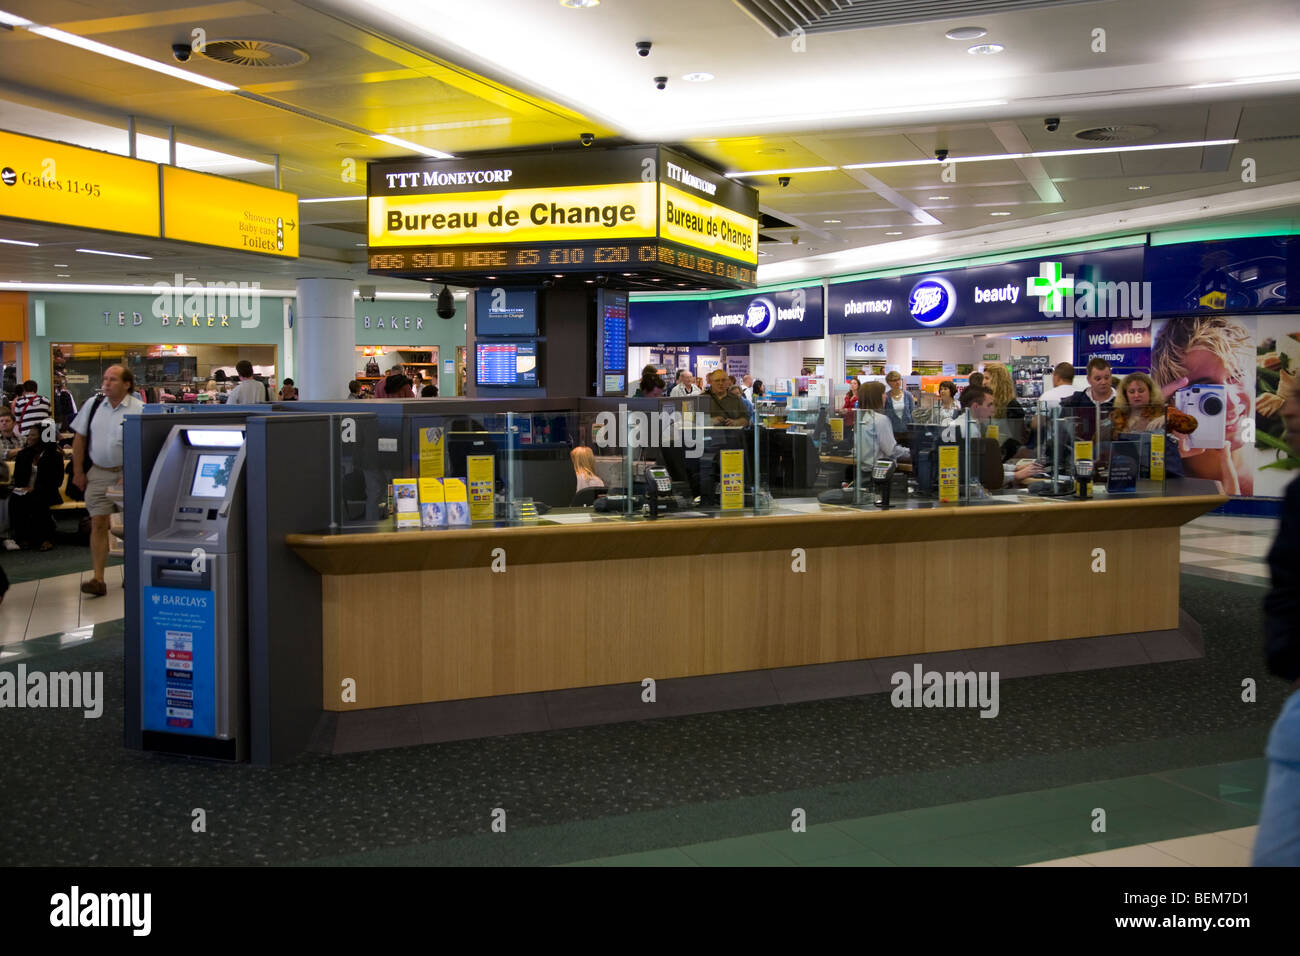 bureau de change office operated by ttt moneycorp at gatwick airport stock photo 26260445 alamy. Black Bedroom Furniture Sets. Home Design Ideas